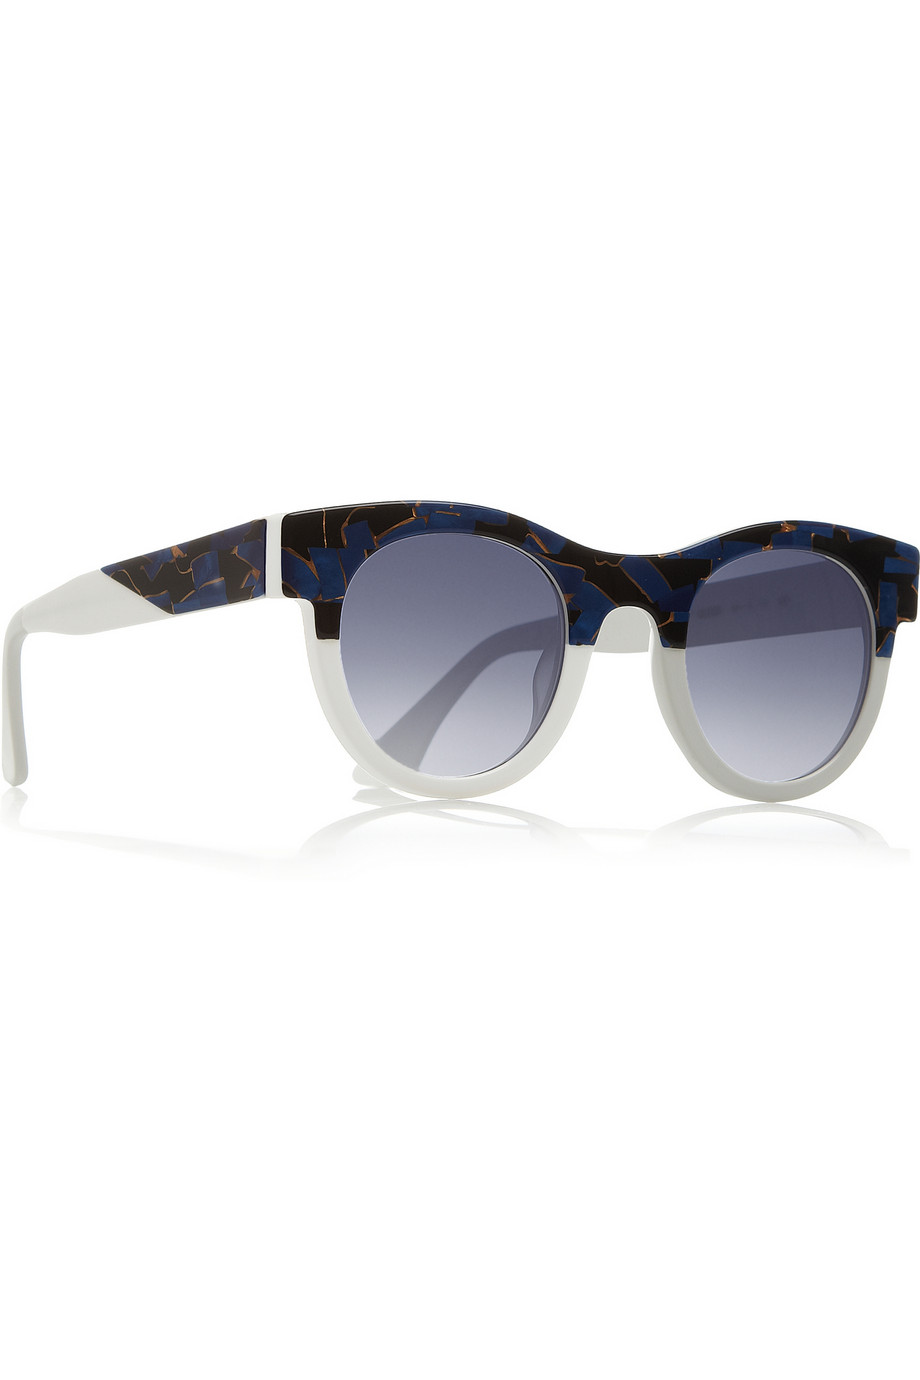 Thierry Lasry Agony Roundframe Acetate Sunglasses in Blue